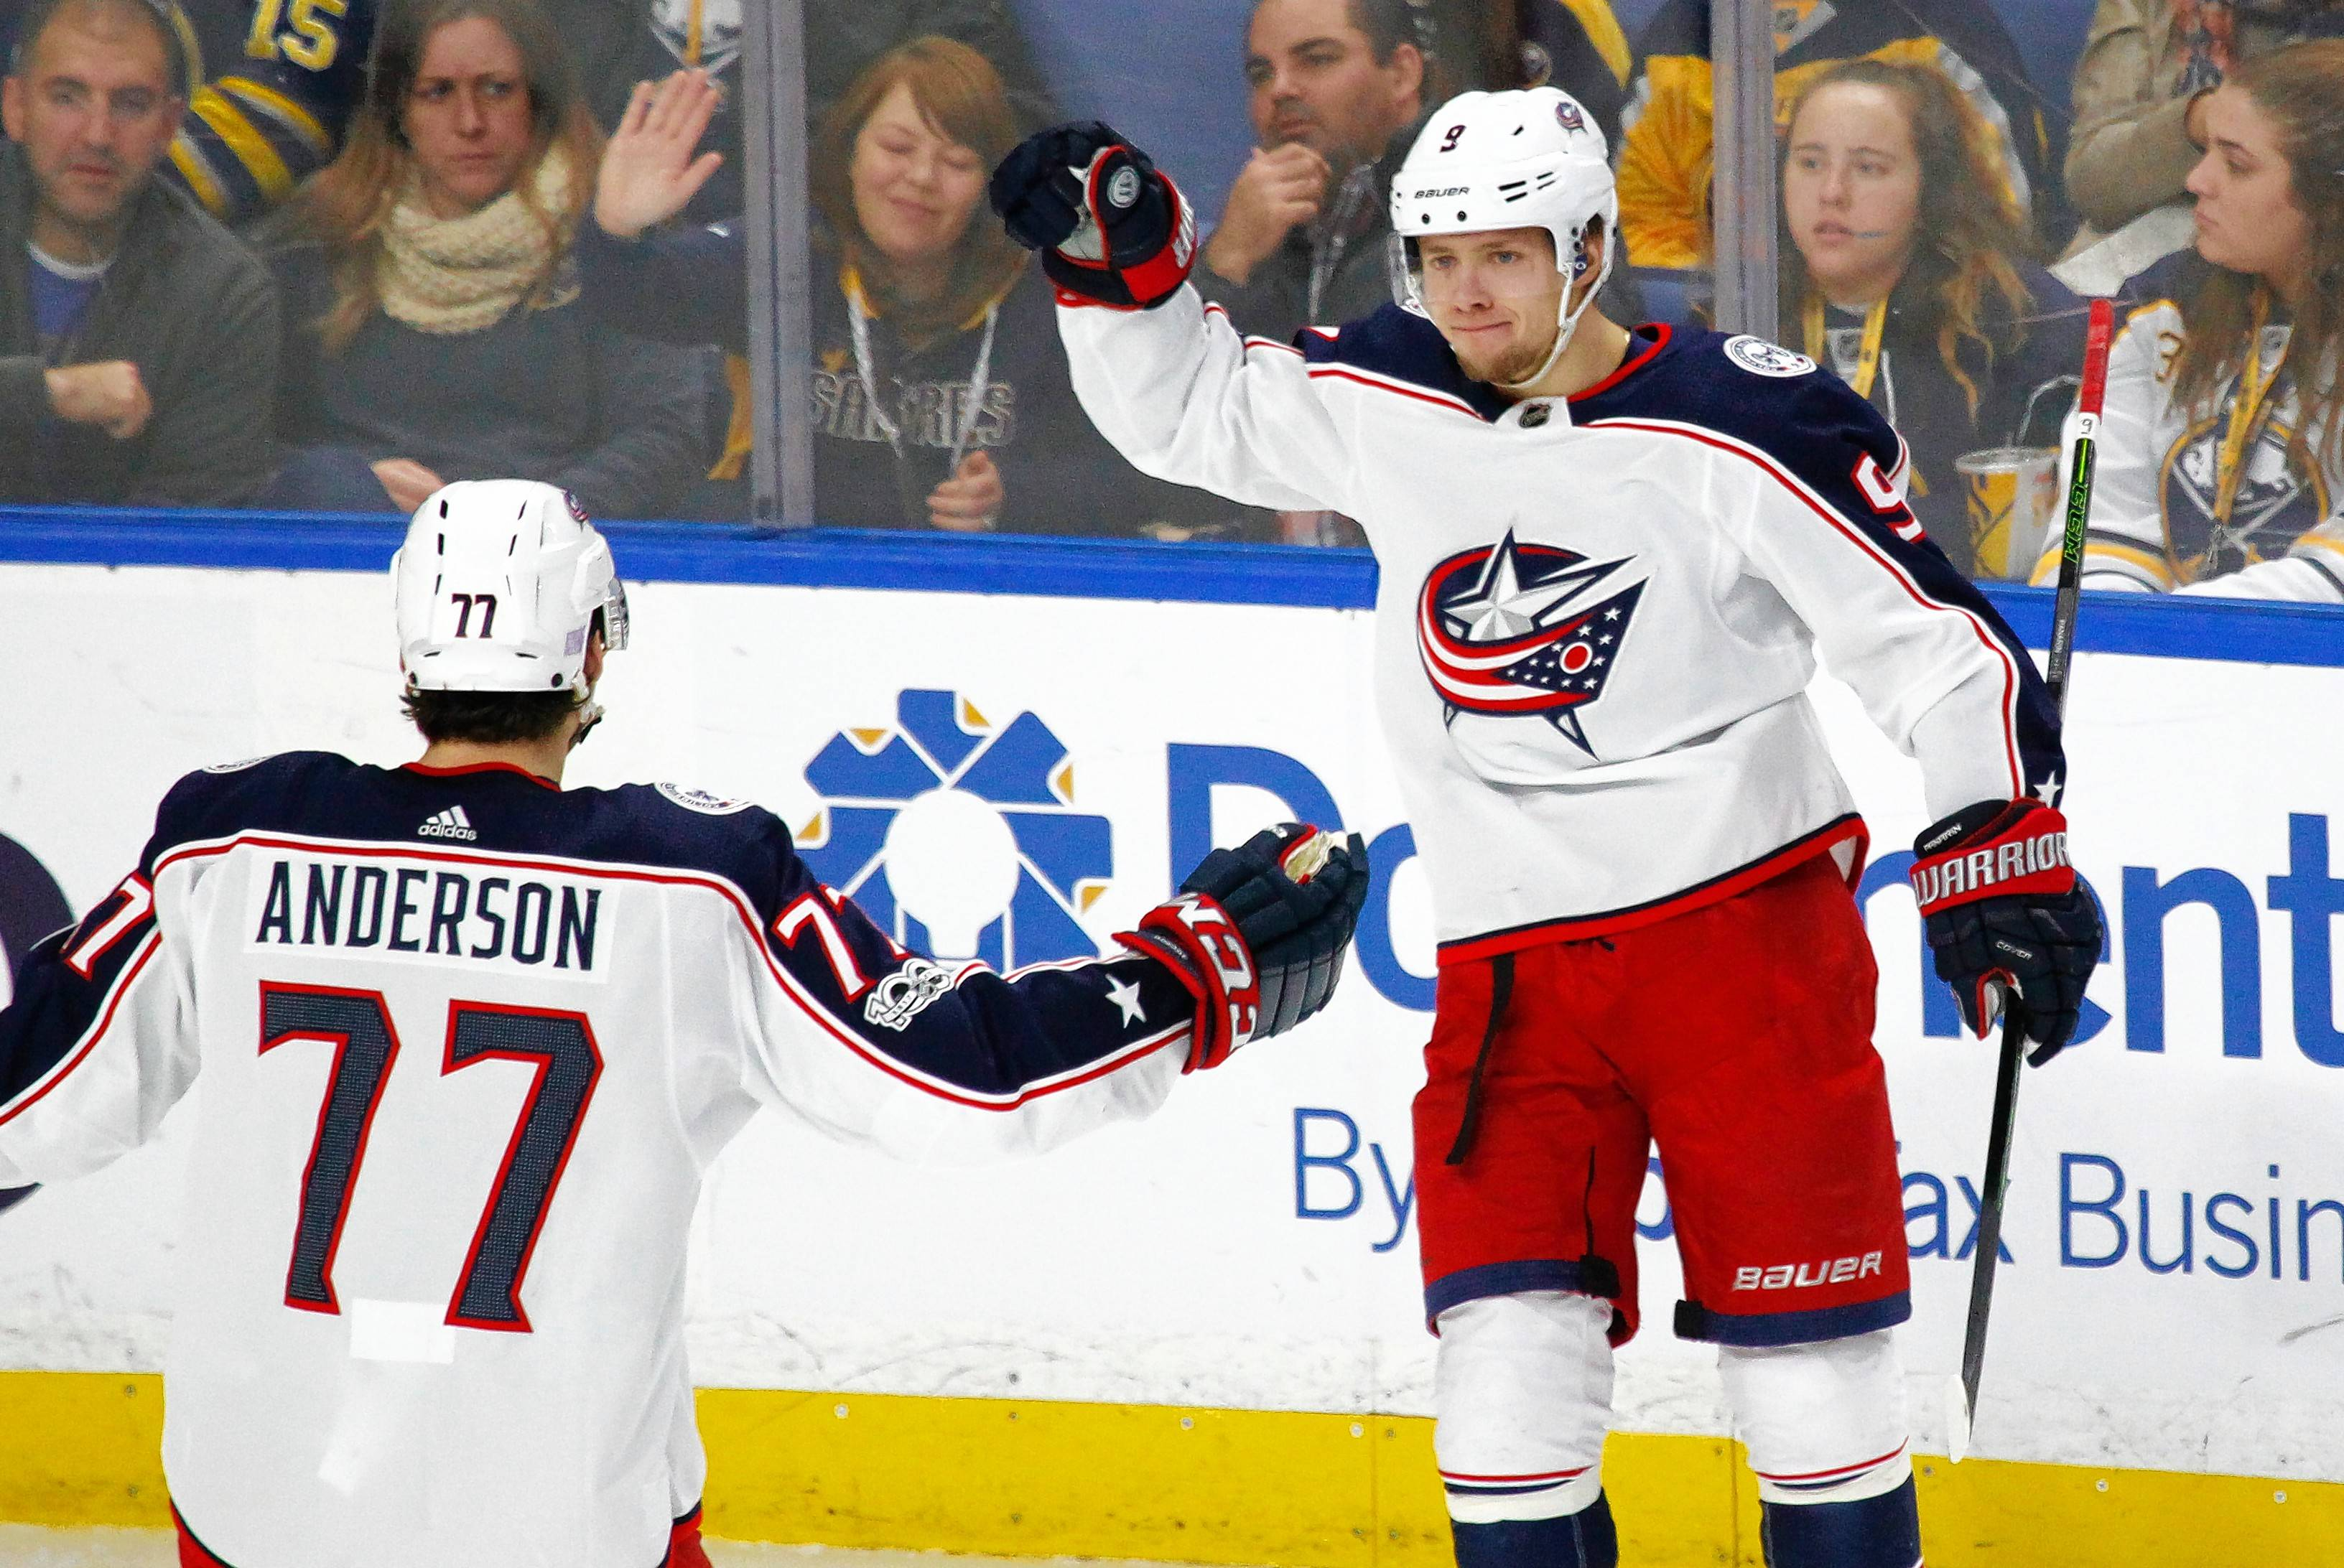 Columbus Blue Jackets Josh Anderson (77) and Artemi Panarin (9) celebrate a goal game against the Buffalo Sabres during a November game. The Russian superstar has been nothing short of spectacular after being traded to the Blue Jackets in the off-season.